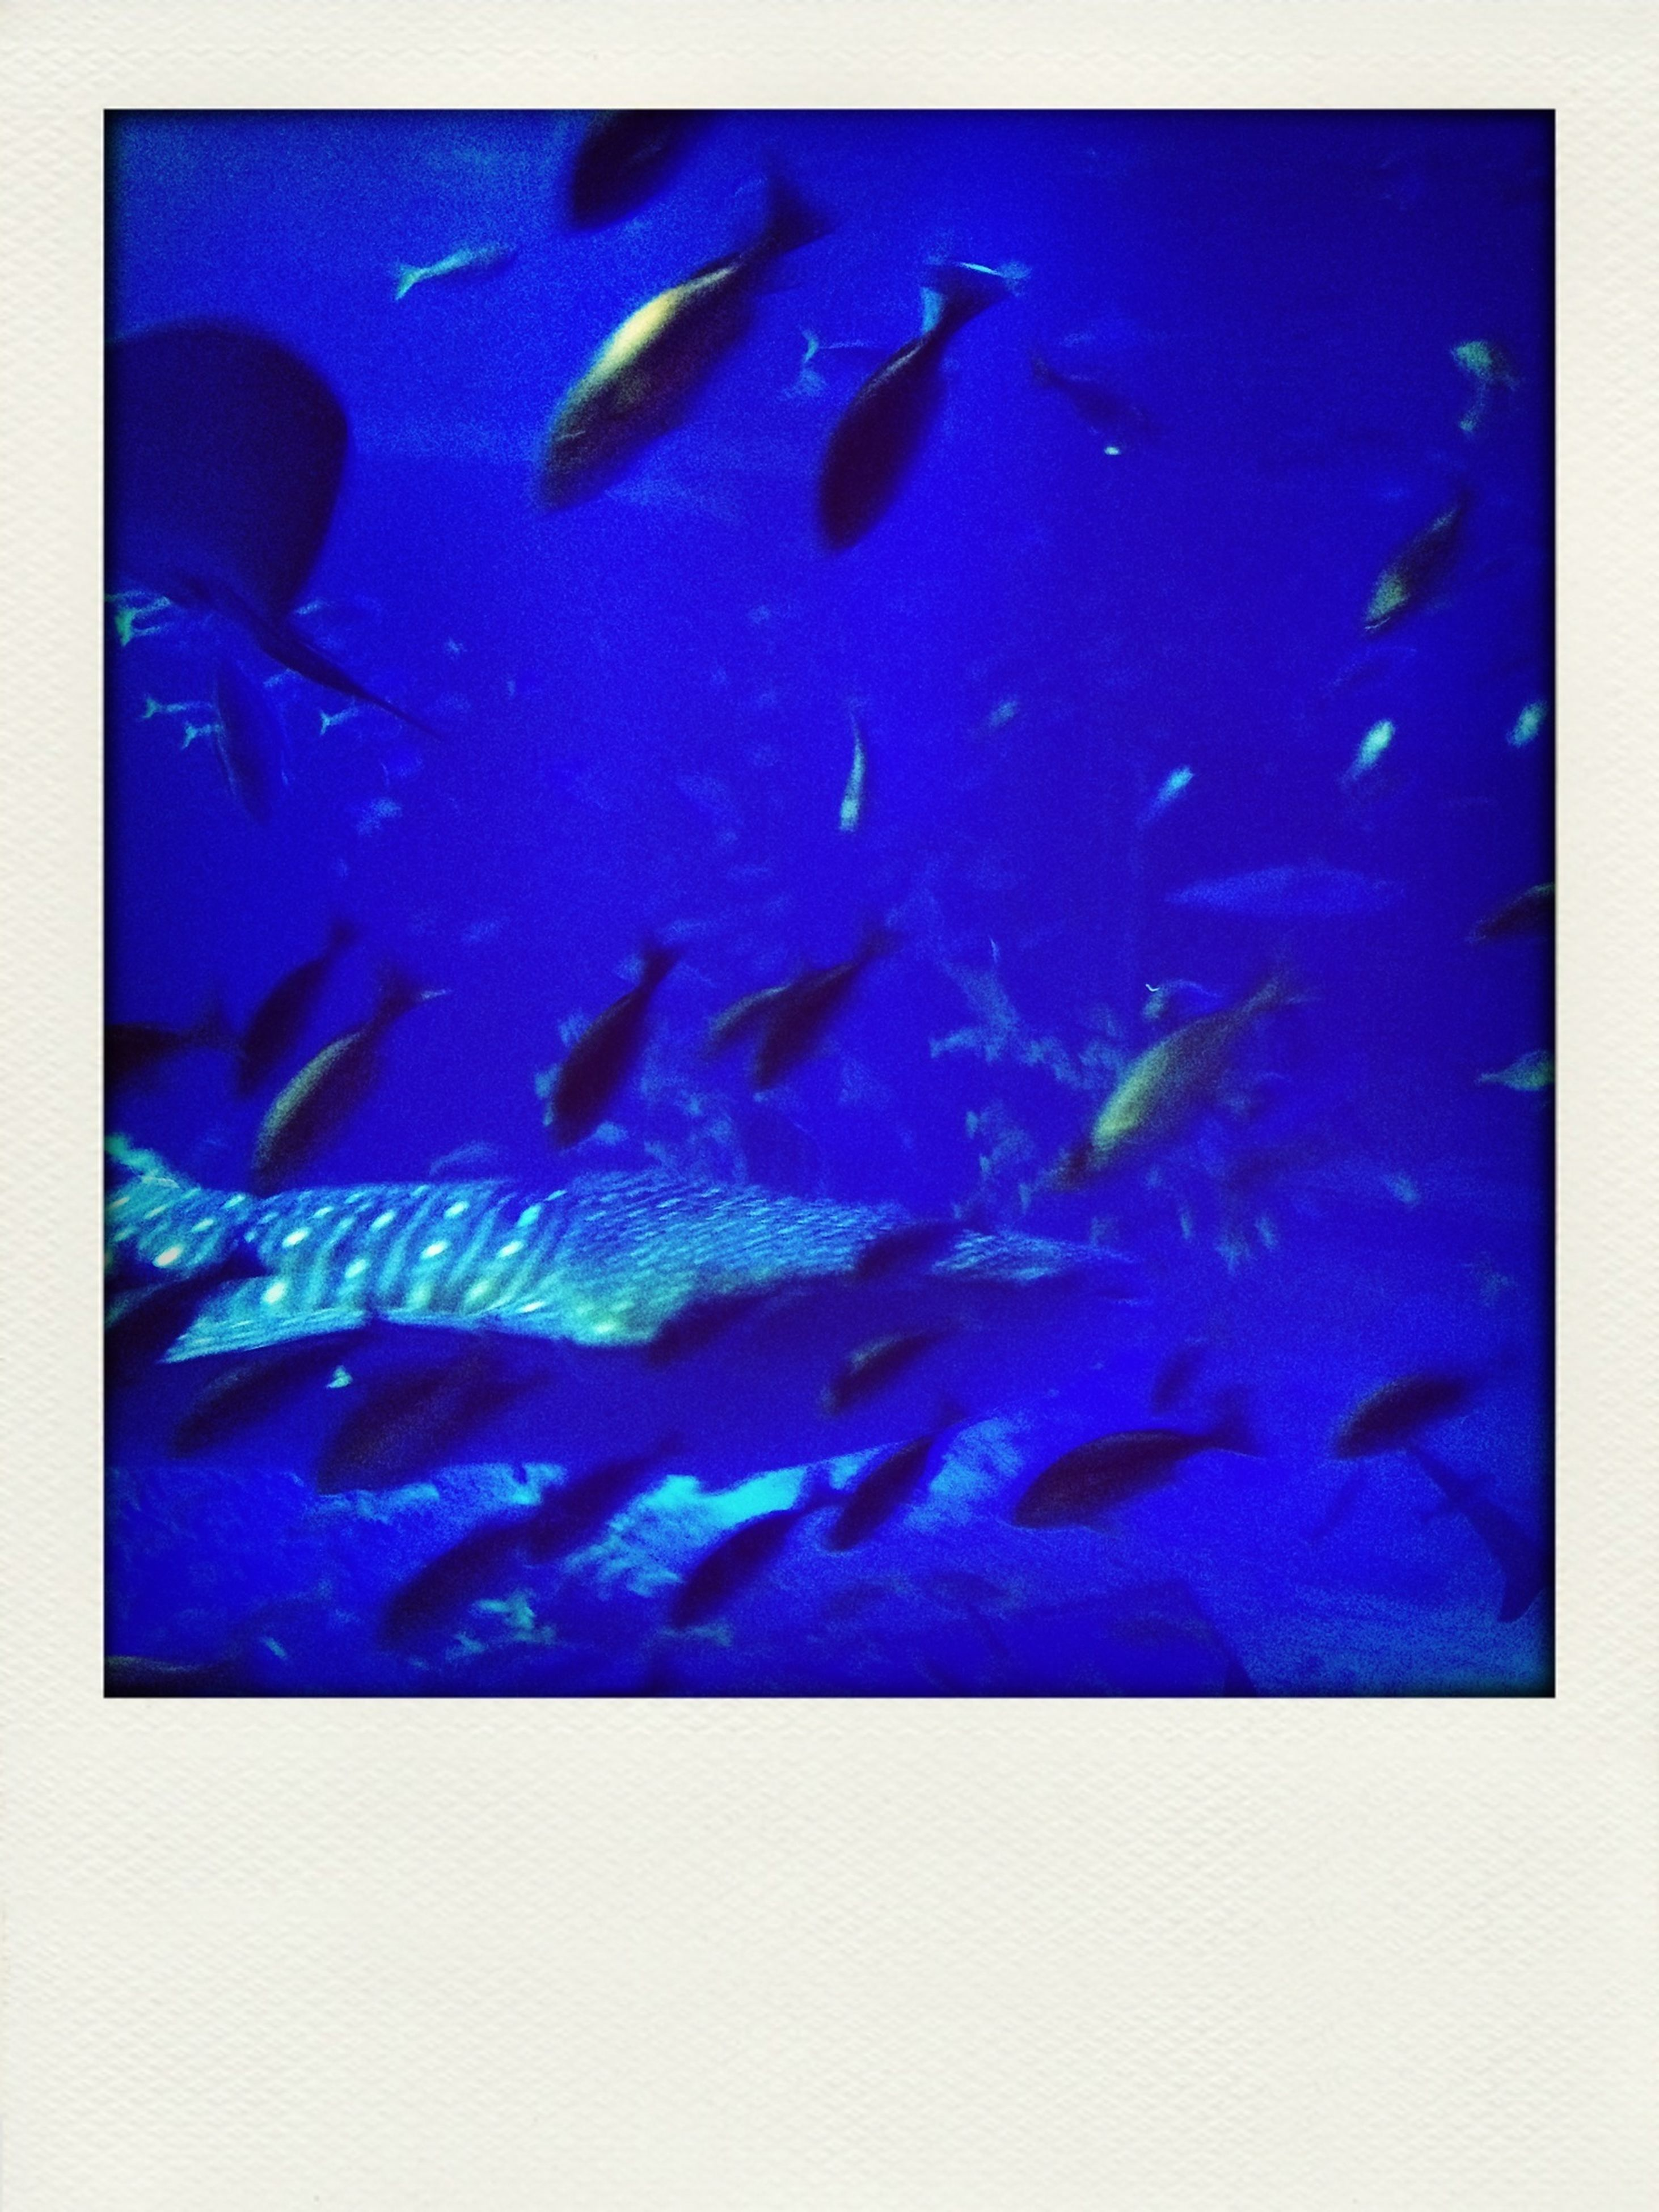 animal themes, underwater, wildlife, animals in the wild, blue, sea life, swimming, fish, undersea, transfer print, school of fish, auto post production filter, indoors, water, aquarium, full frame, backgrounds, medium group of animals, nature